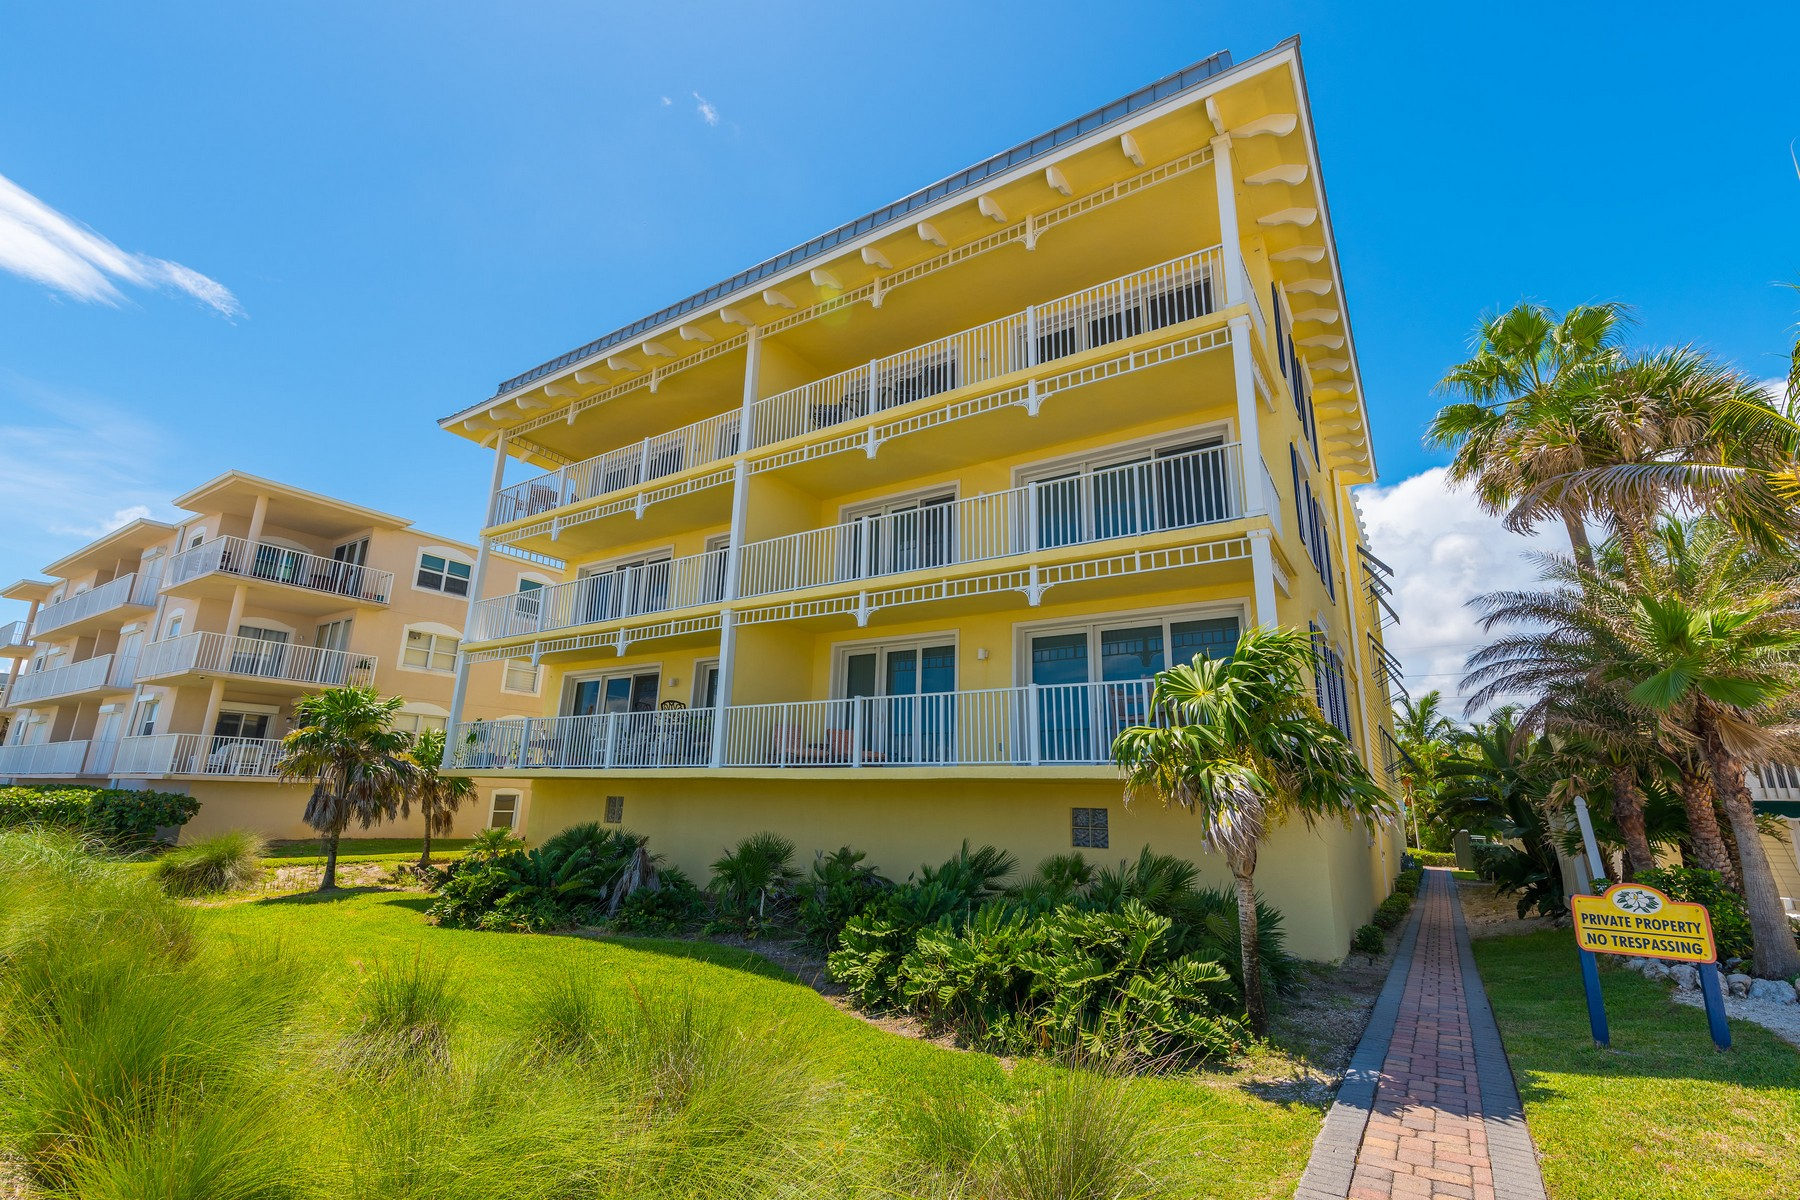 Beautiful Oceanfront Condo in Magnolia Key 605 S Miramar Ave #3201 Indialantic, Florida 32903 Vereinigte Staaten